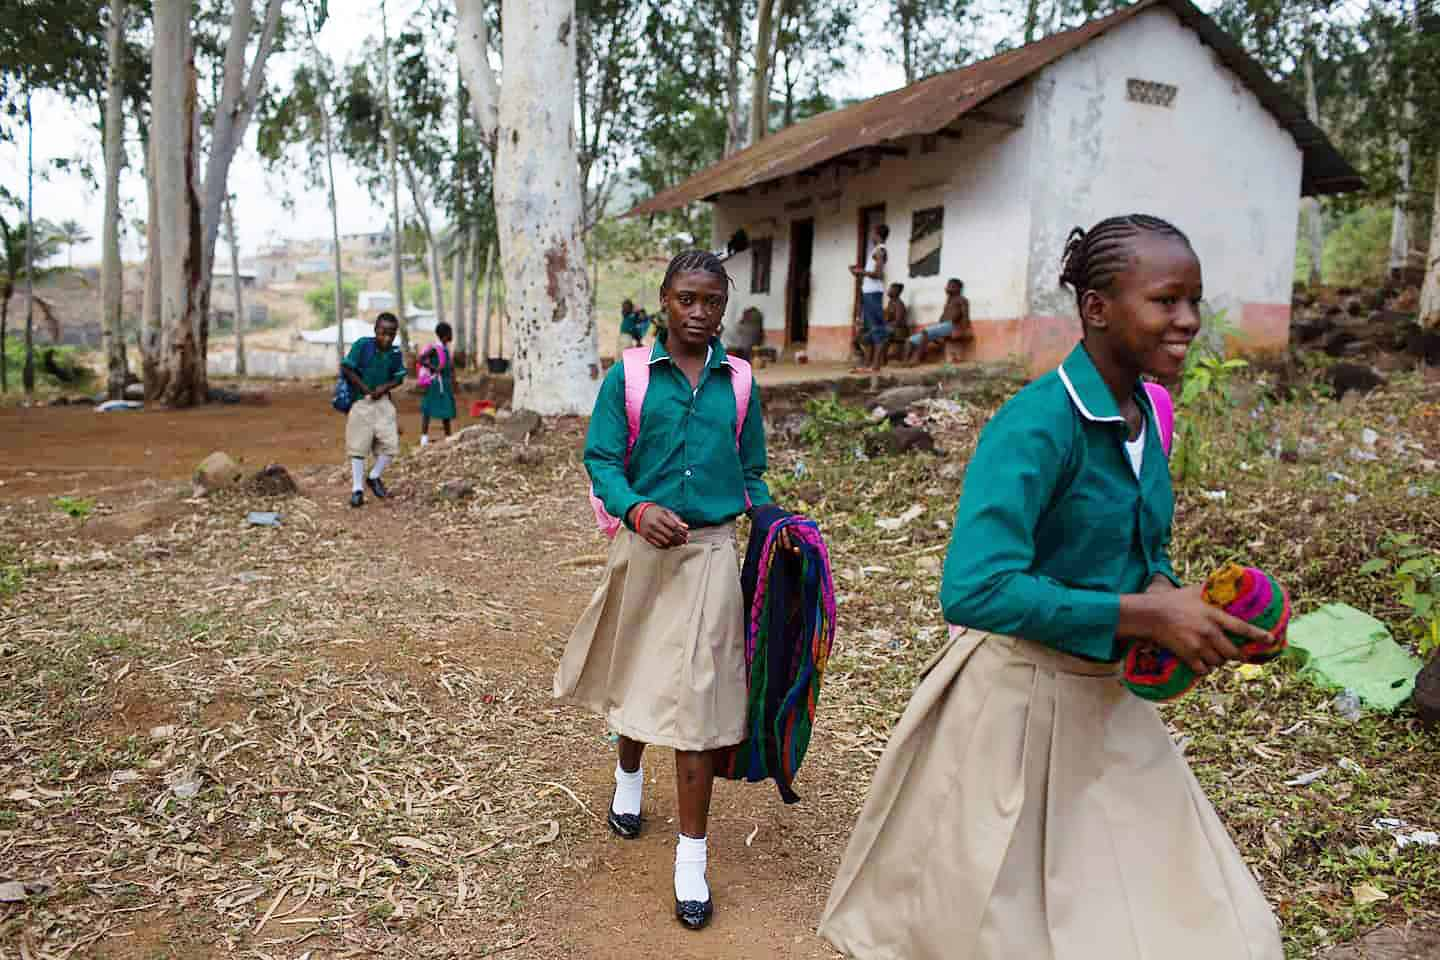 Schoolgirls in Sierra Leone